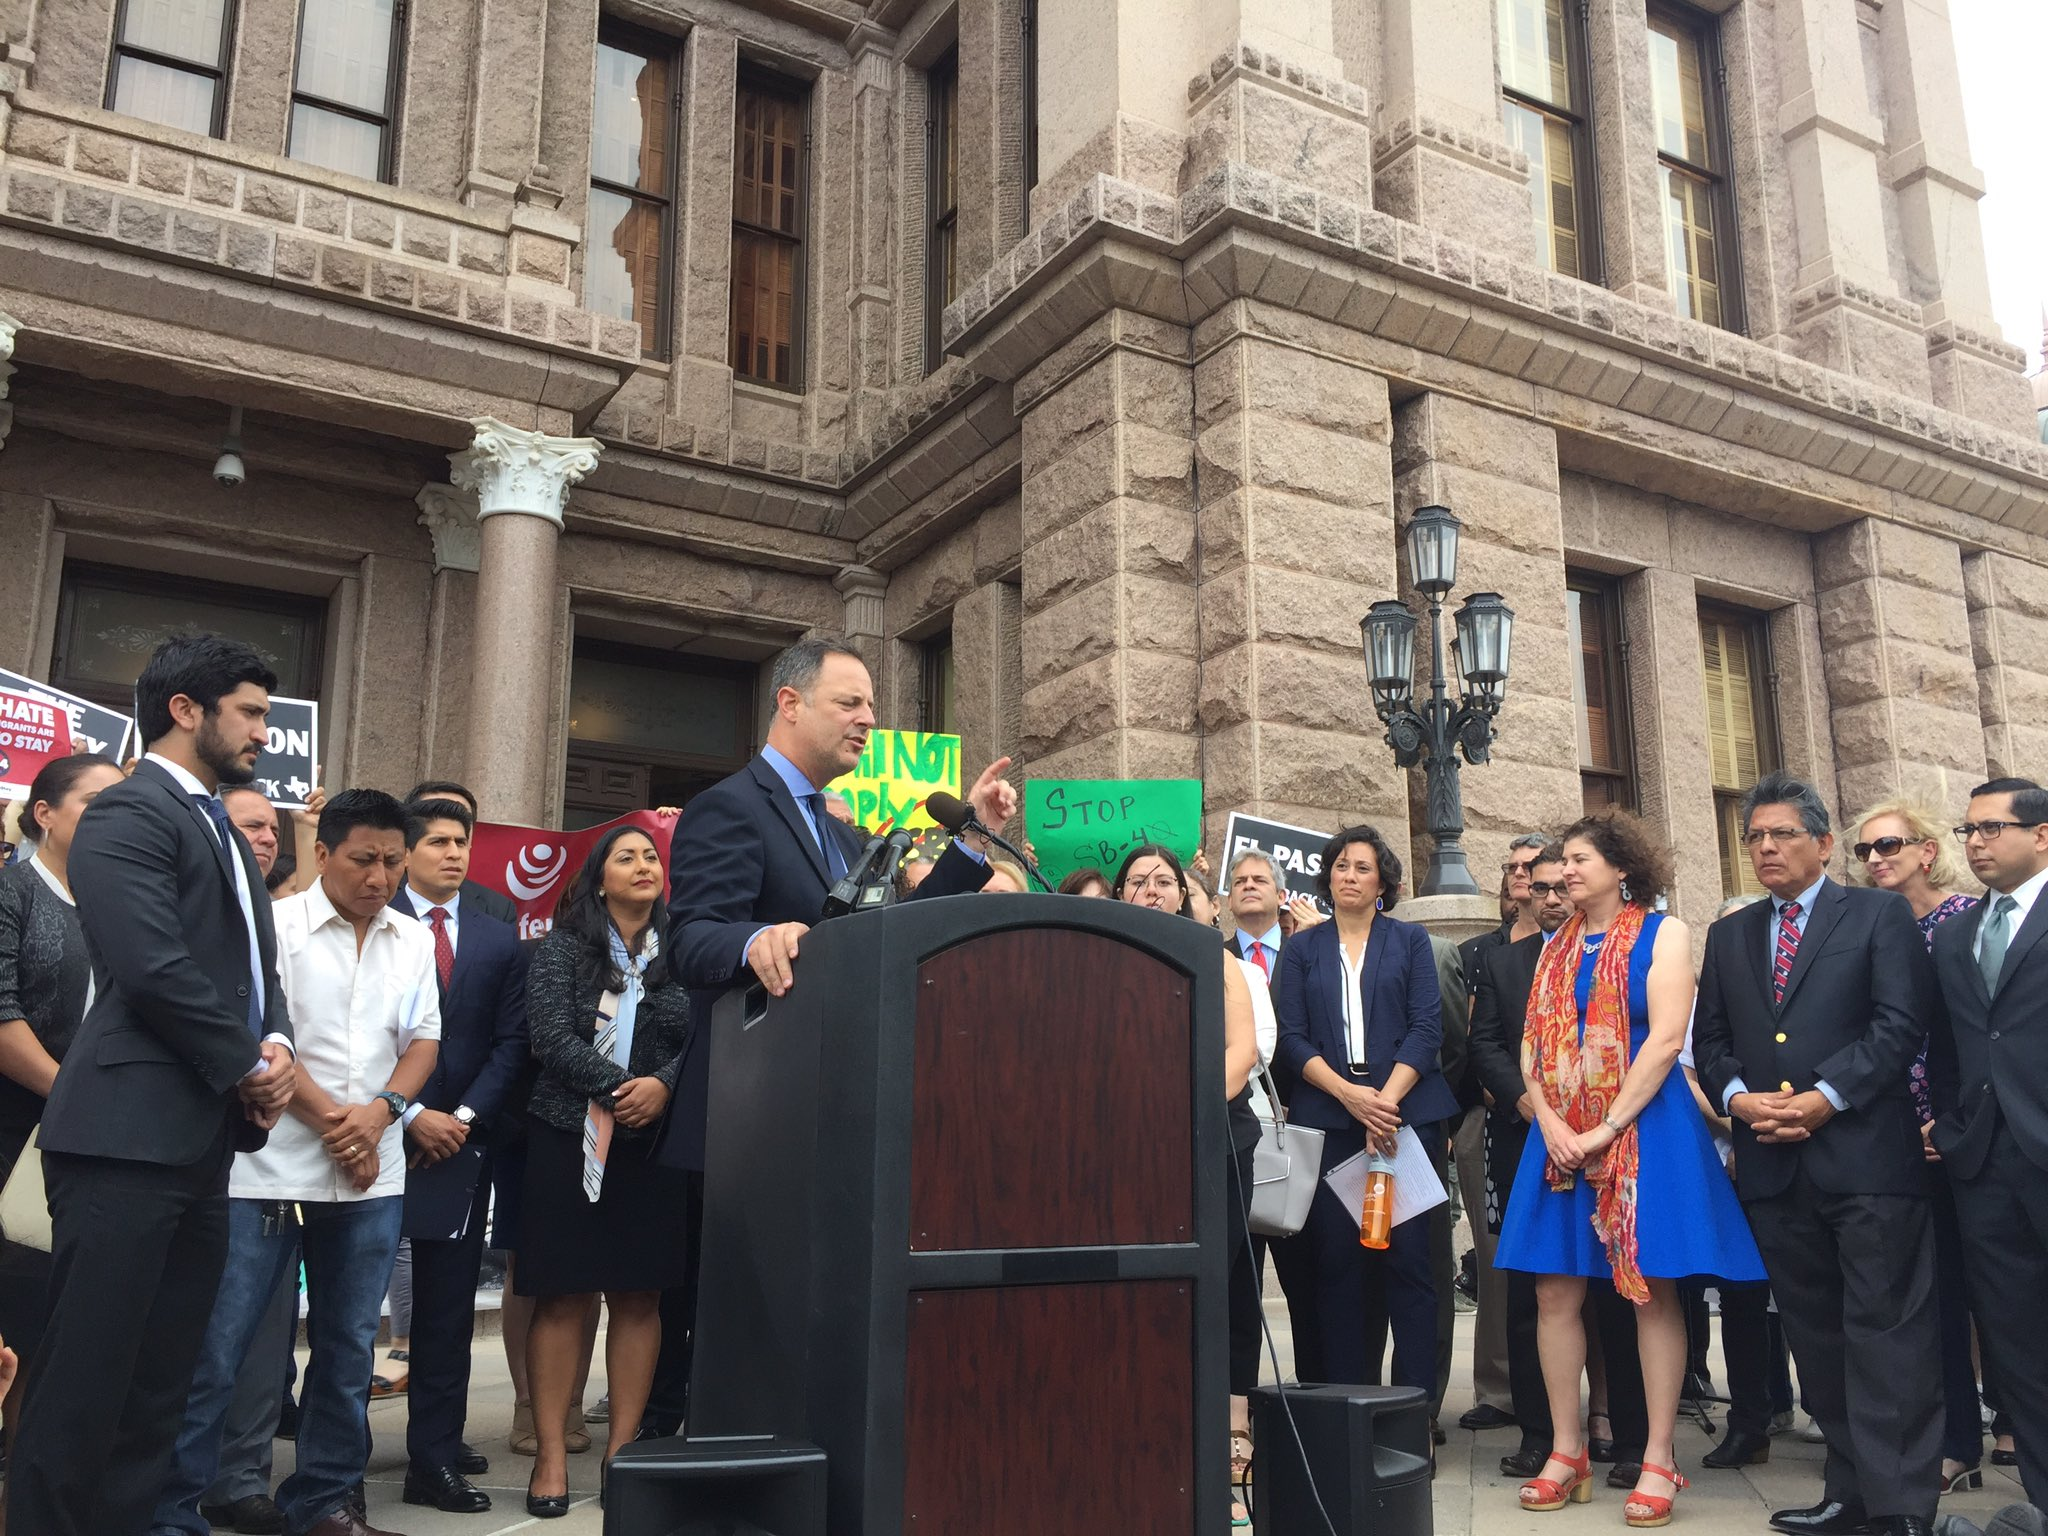 """.@RafaelAnchia #SB4 is """"about conflating immigrants w criminality, lawlessness for political gain"""" #txlege https://t.co/zWVTq3P5Eu"""